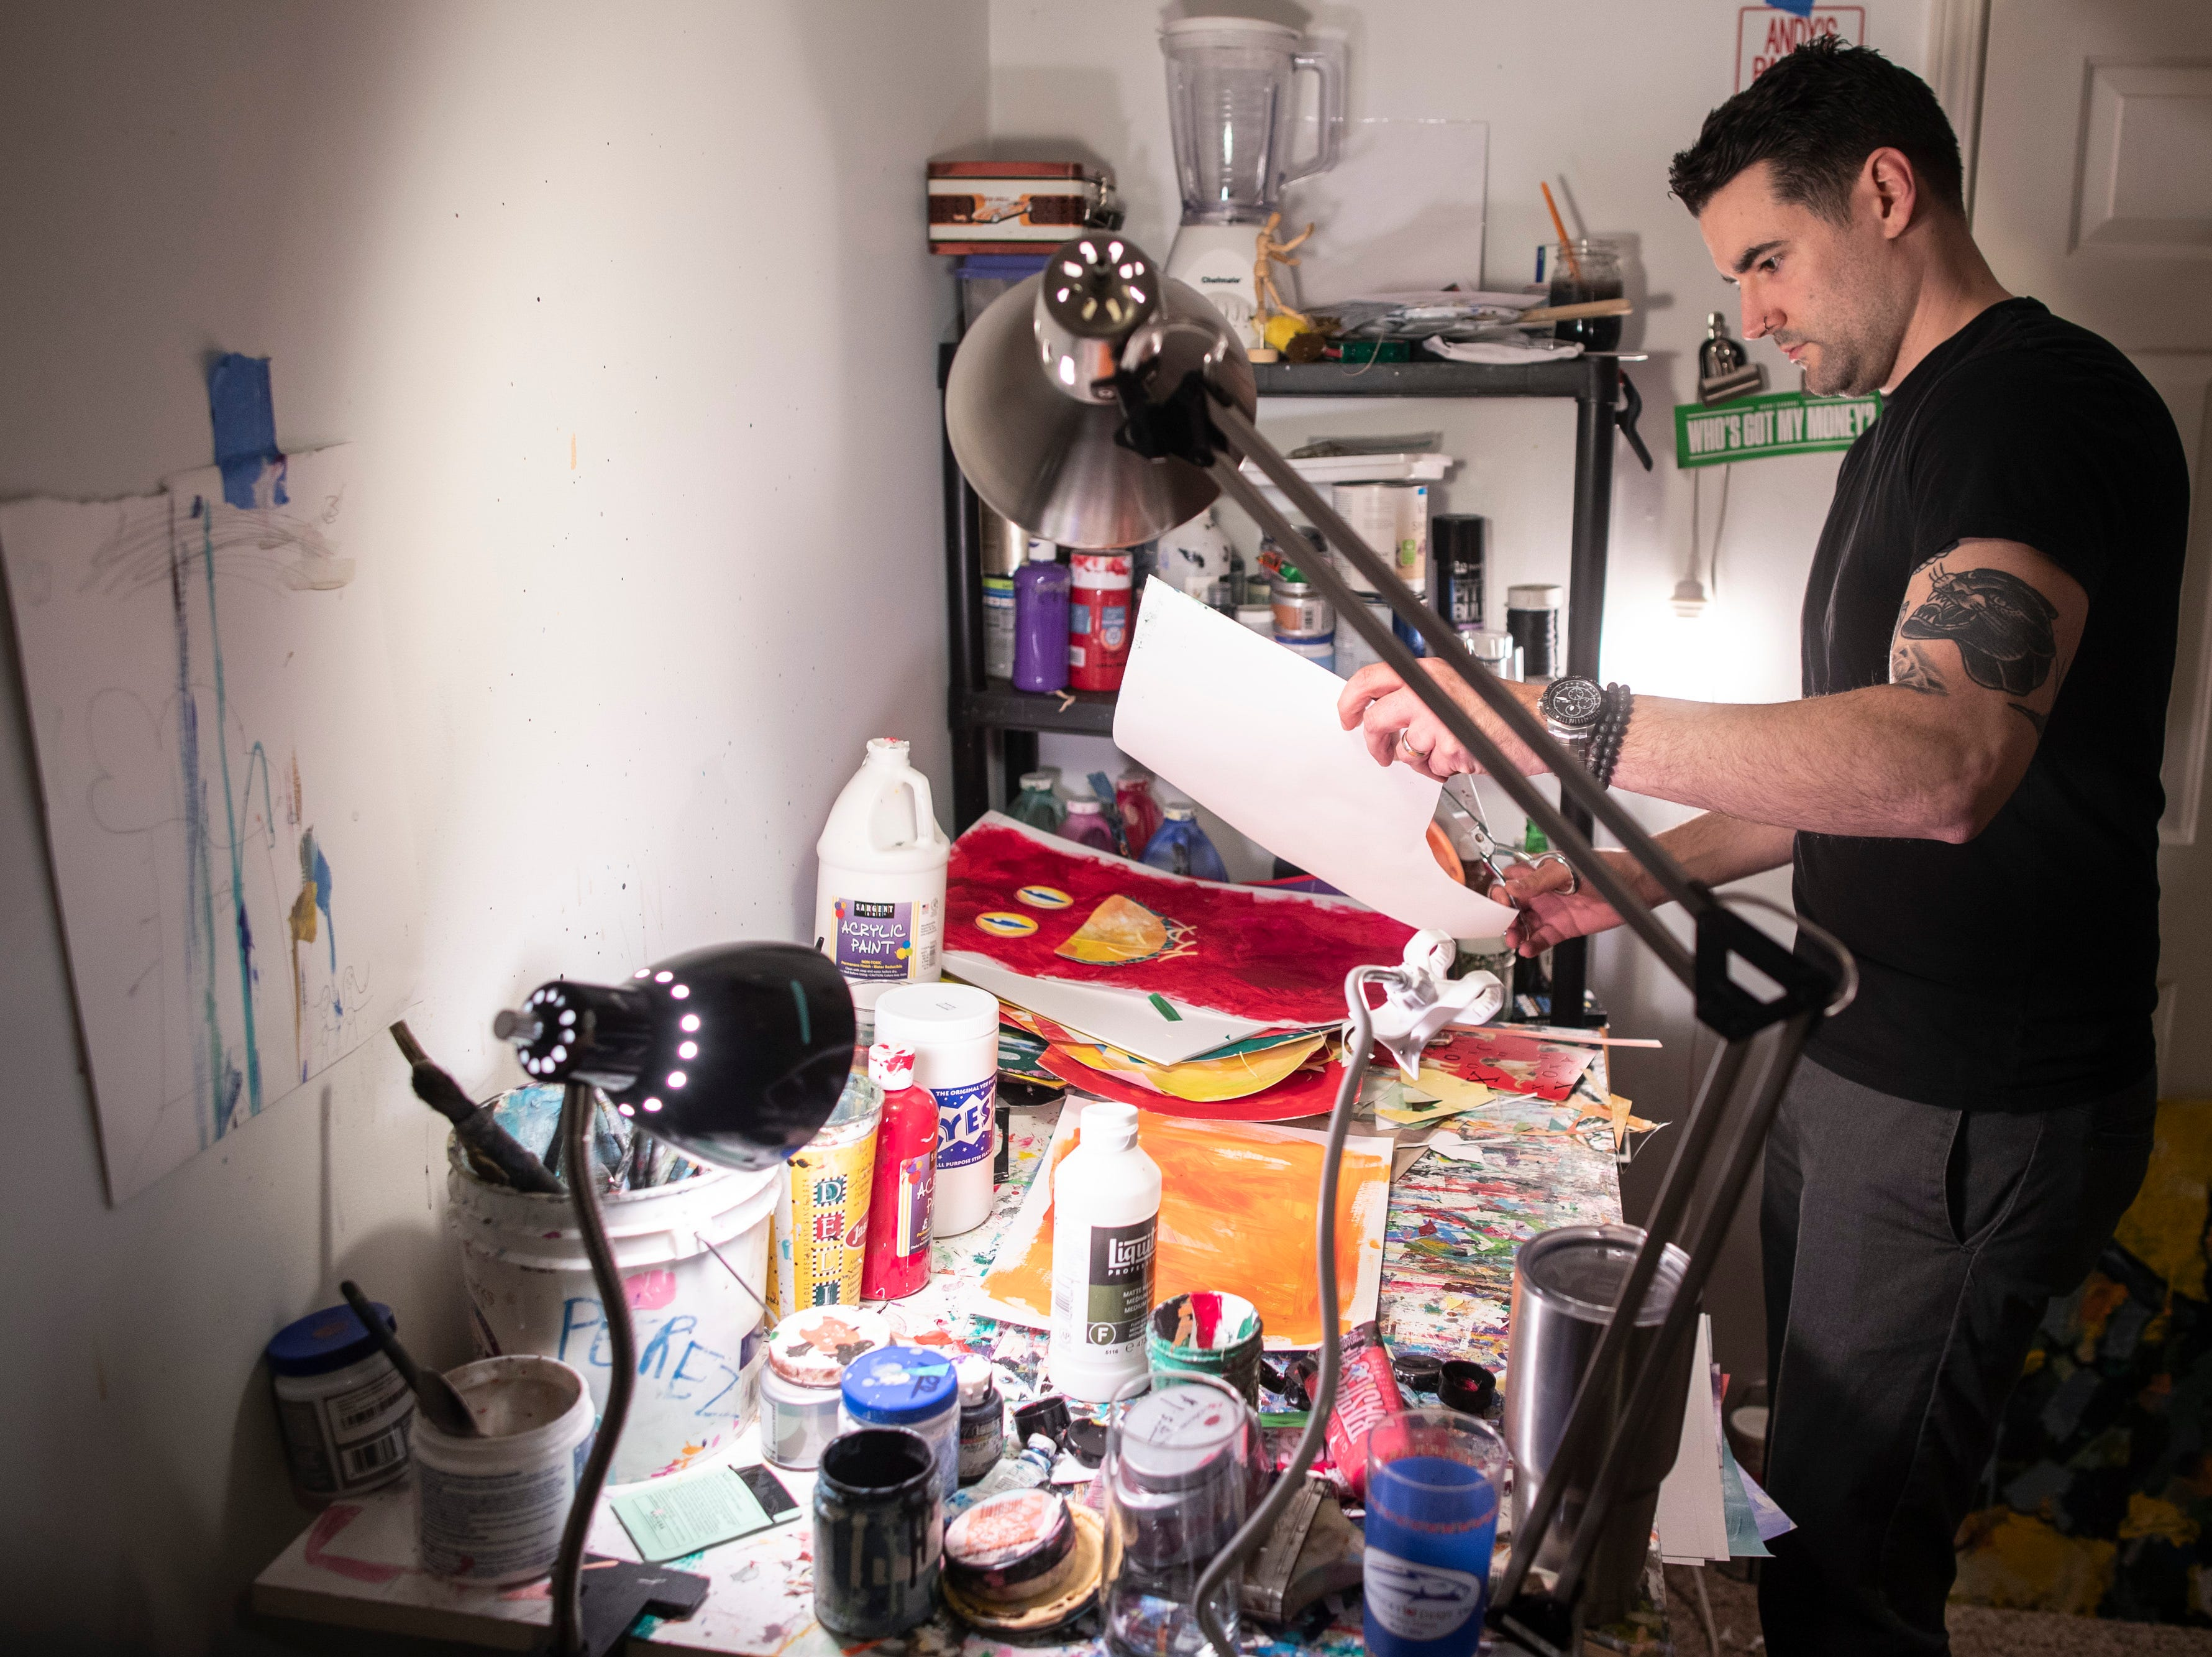 Louisville artist Andy Perez works on projects in his home studio. Perez graduated college in 2004 and has been doing work professionally since that time. March 11, 2019